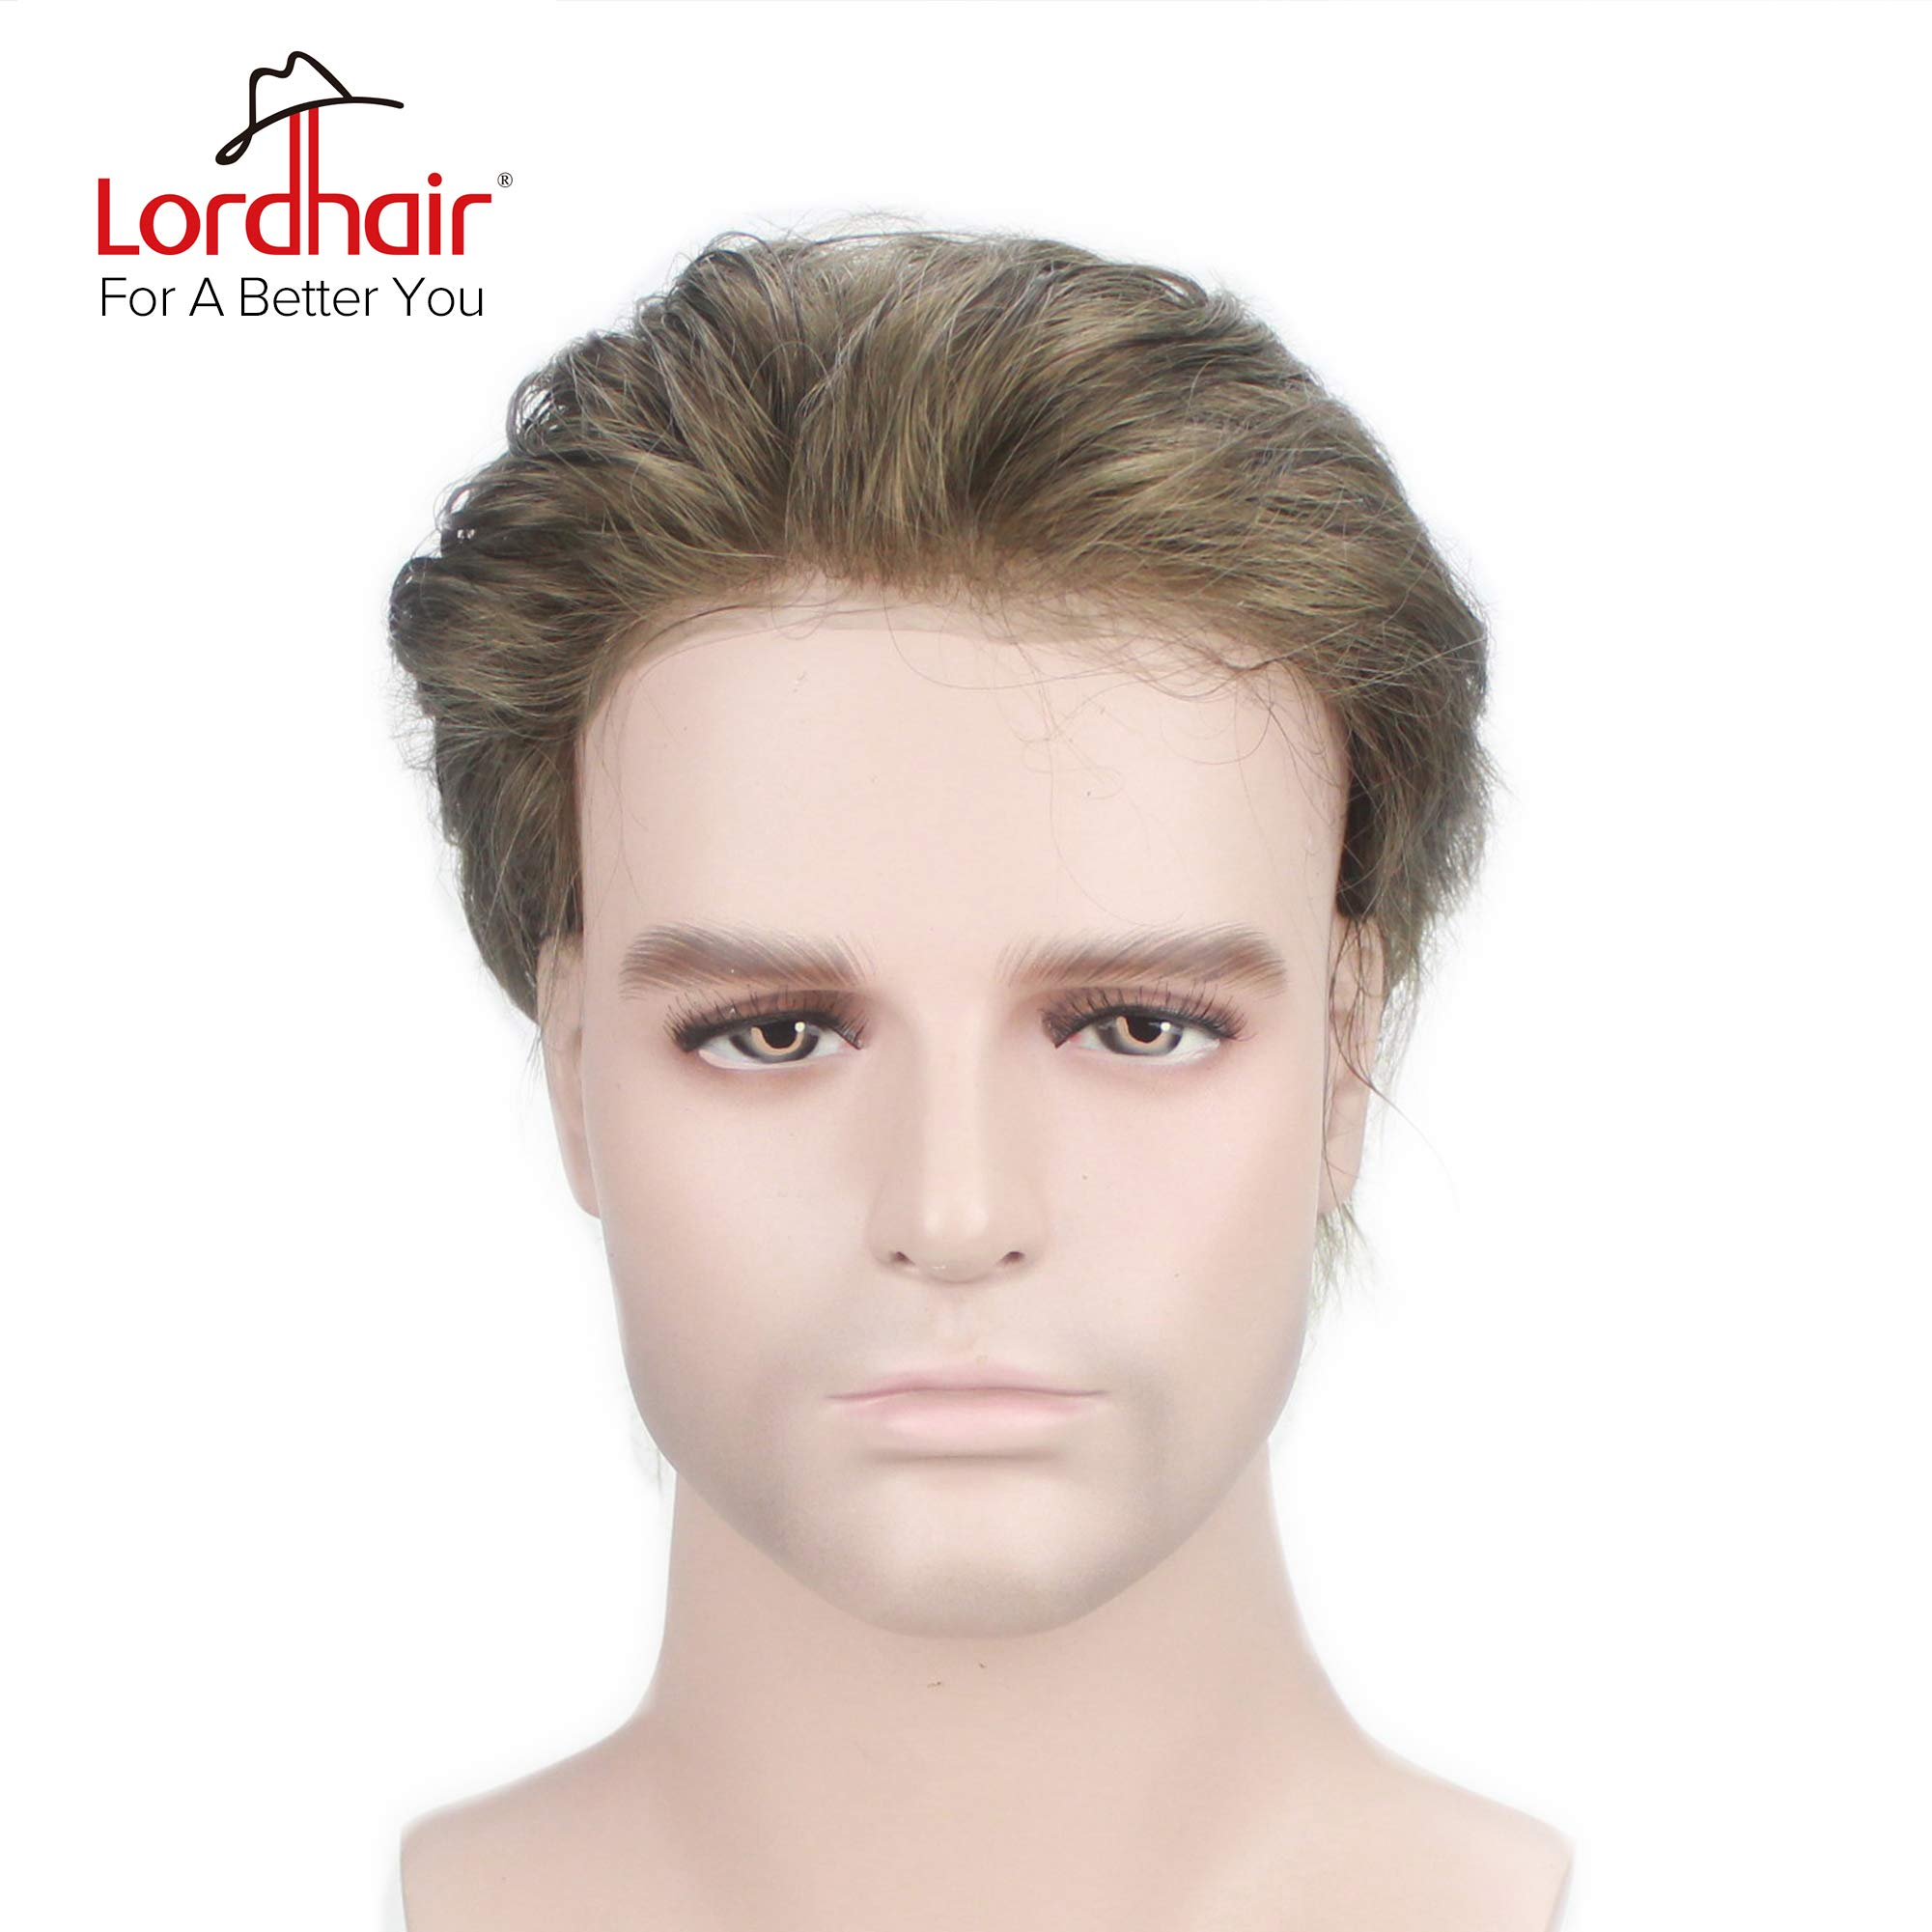 Lordhair Human Hair Super Thin Skin Men's Toupee V-looped Hair Color 7# without Knots